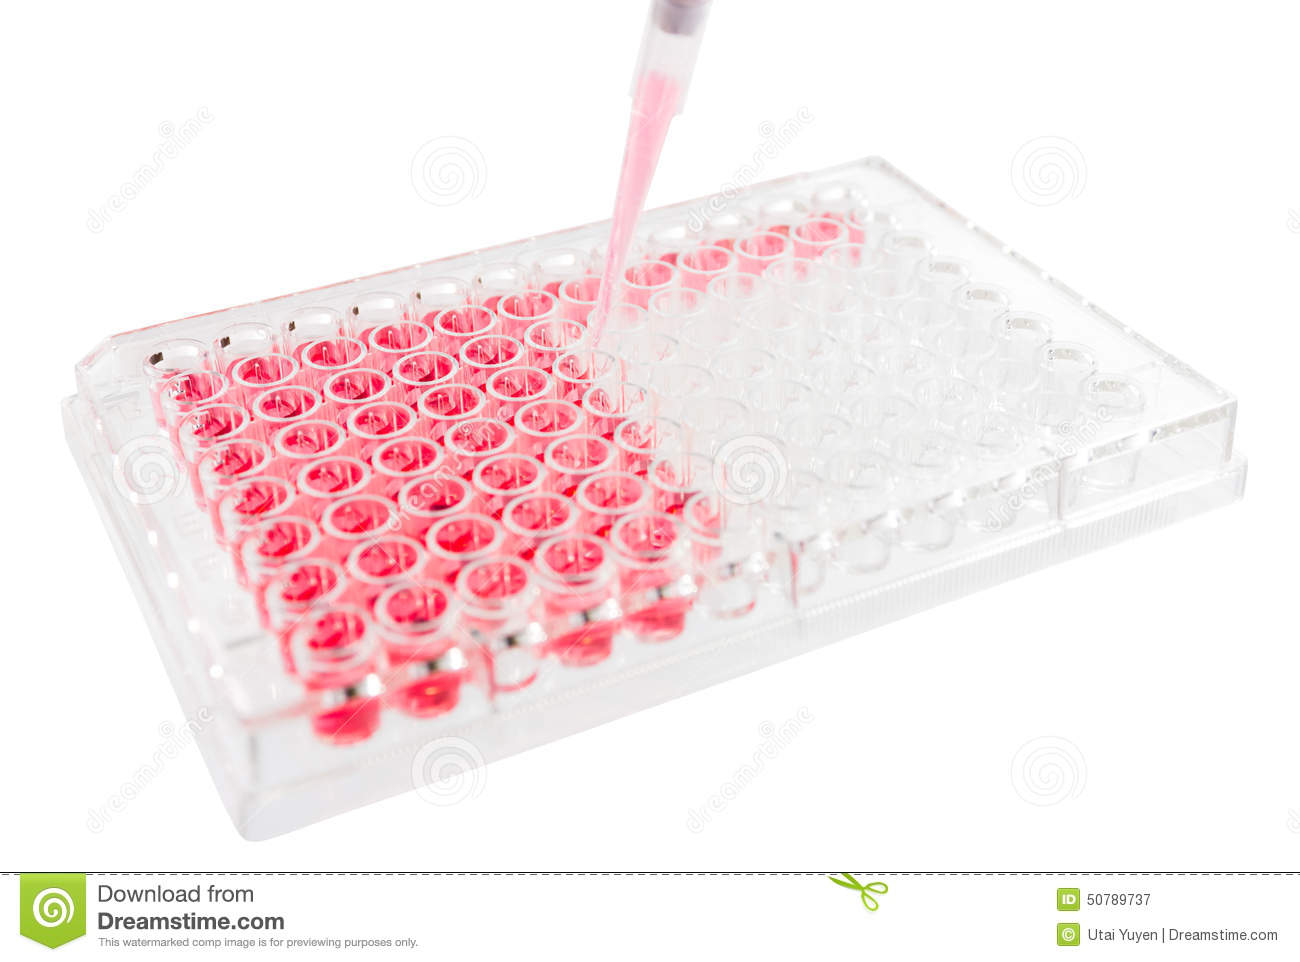 Research Test Lab Elisa Plat Stock Photo - Image: 50789737